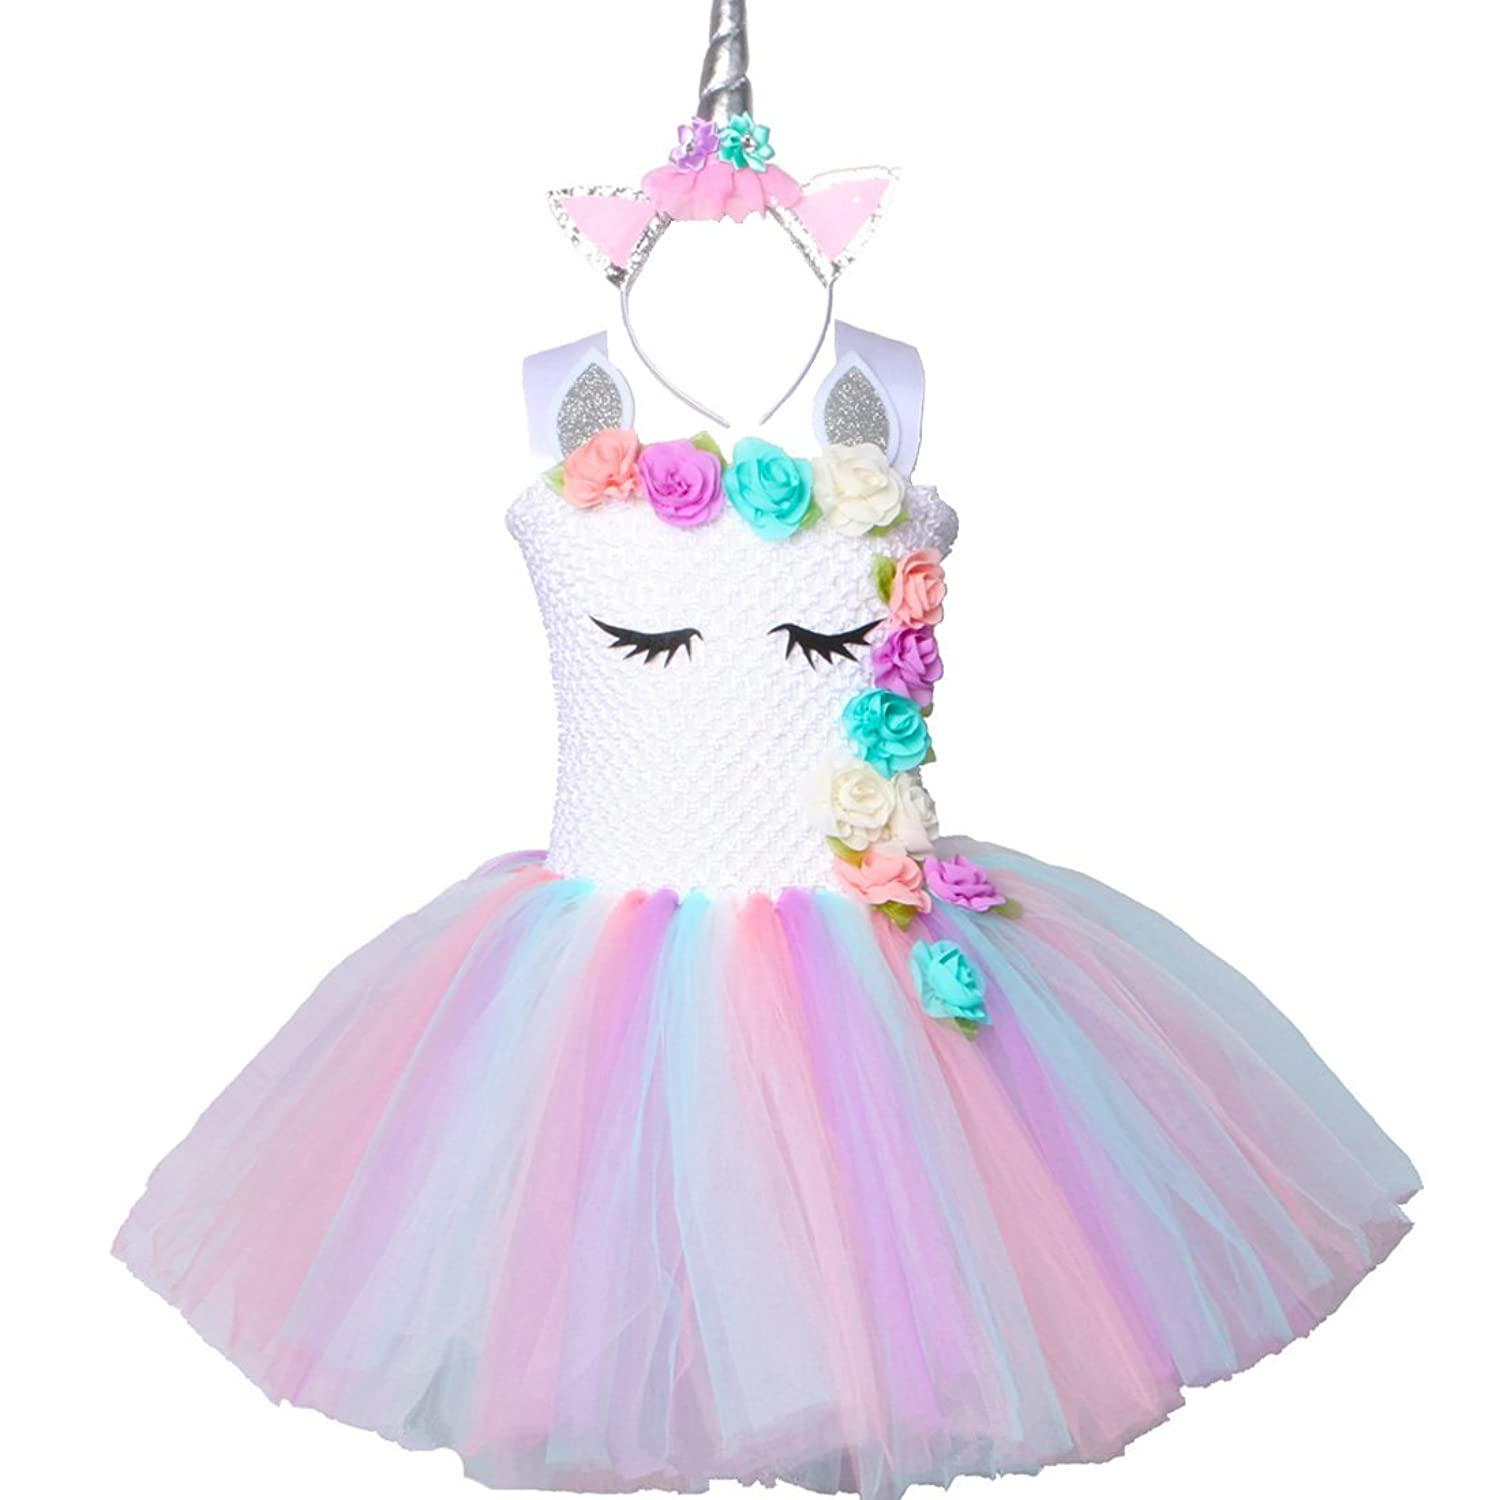 a7003ddb171a This is handmade fancy tulle strips tutu dress,Knee-length.Include cute  unicorn headband that matches outfit.